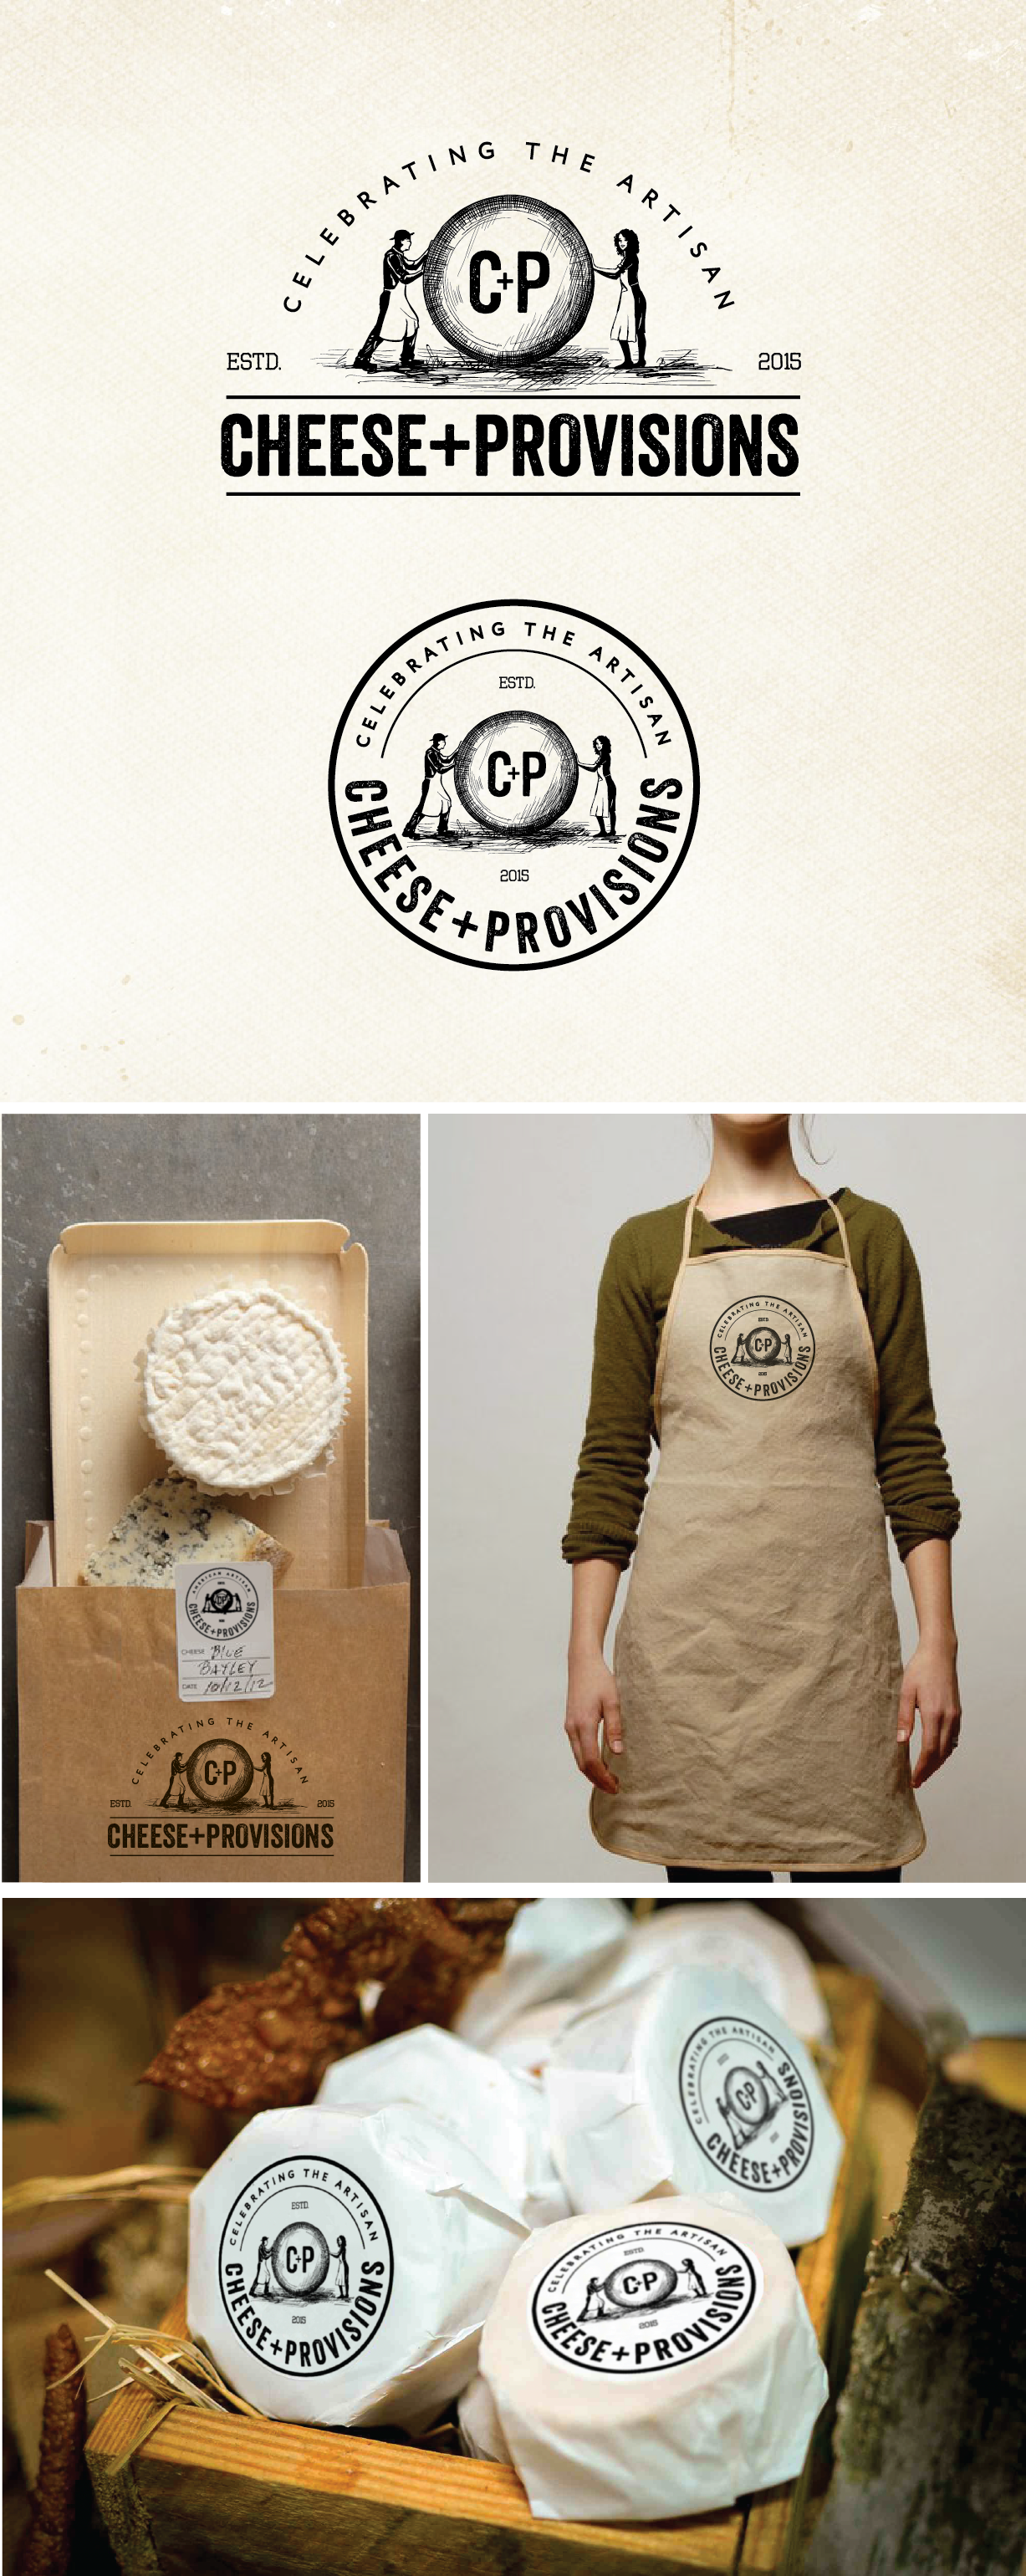 Create a logo for Cheese+Provisions, a cheese store celebrating American artisans